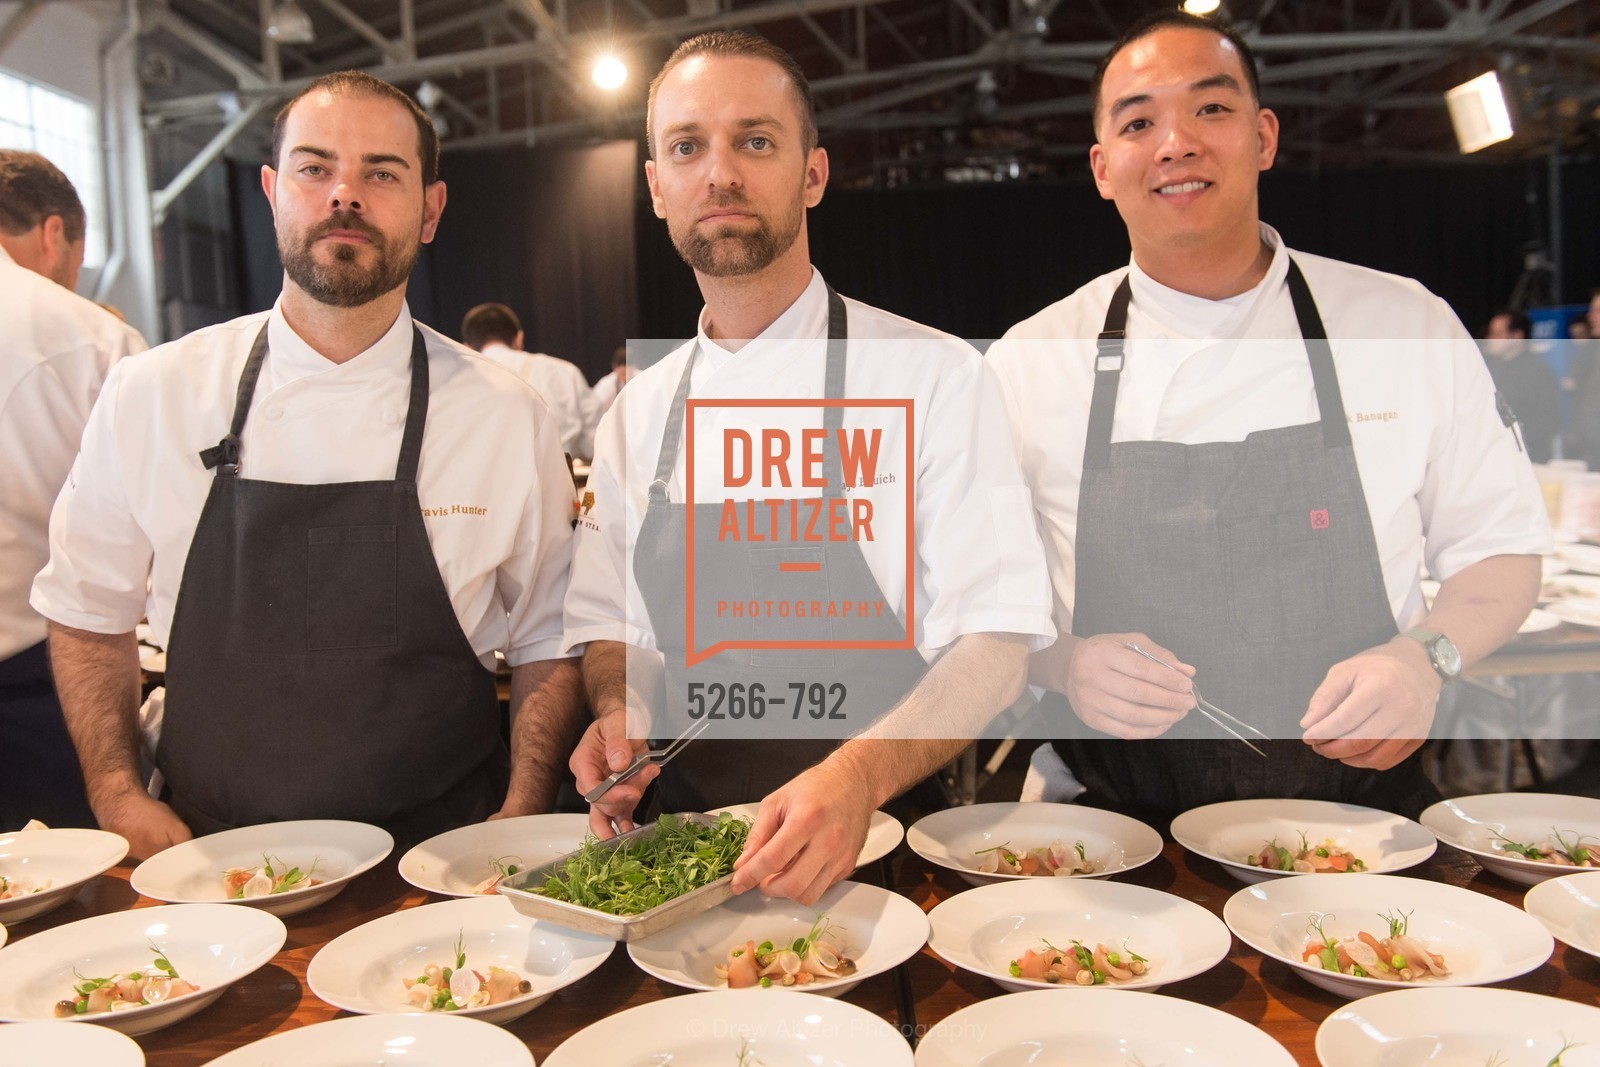 Travis Hunter, Bajo Bruich, Marck Banagan, MEALS ON WHEELS OF SAN FRANCISCO'S 28th Annual Star Chefs and Vintners Gala, US, April 19th, 2015,Drew Altizer, Drew Altizer Photography, full-service agency, private events, San Francisco photographer, photographer california